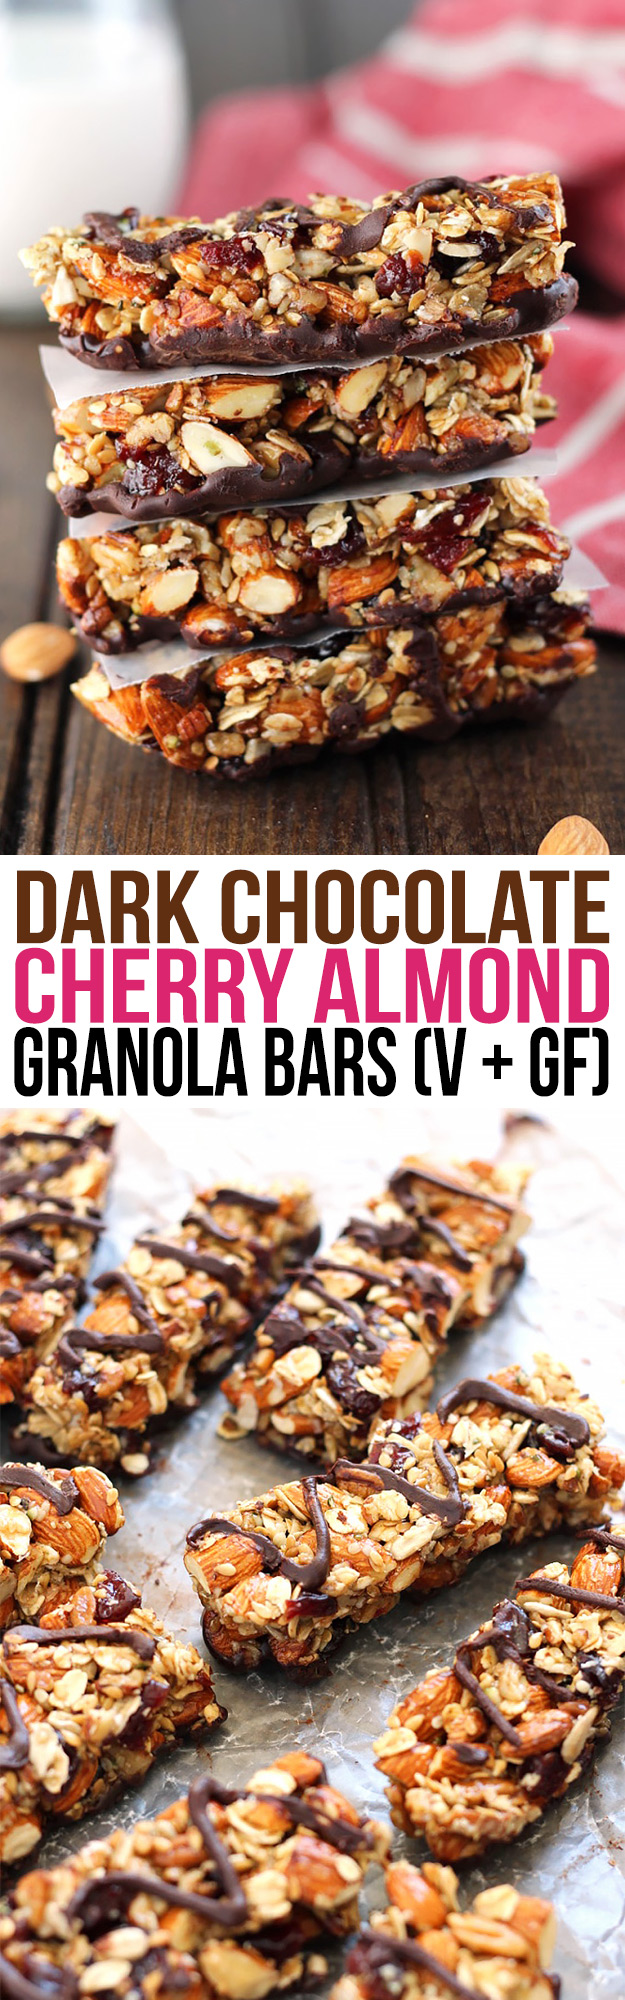 These Dark Chocolate Cherry Almond Granola Bars make great healthy snack and are easily customizable. Plus, they're way cheaper than store-bought bars!